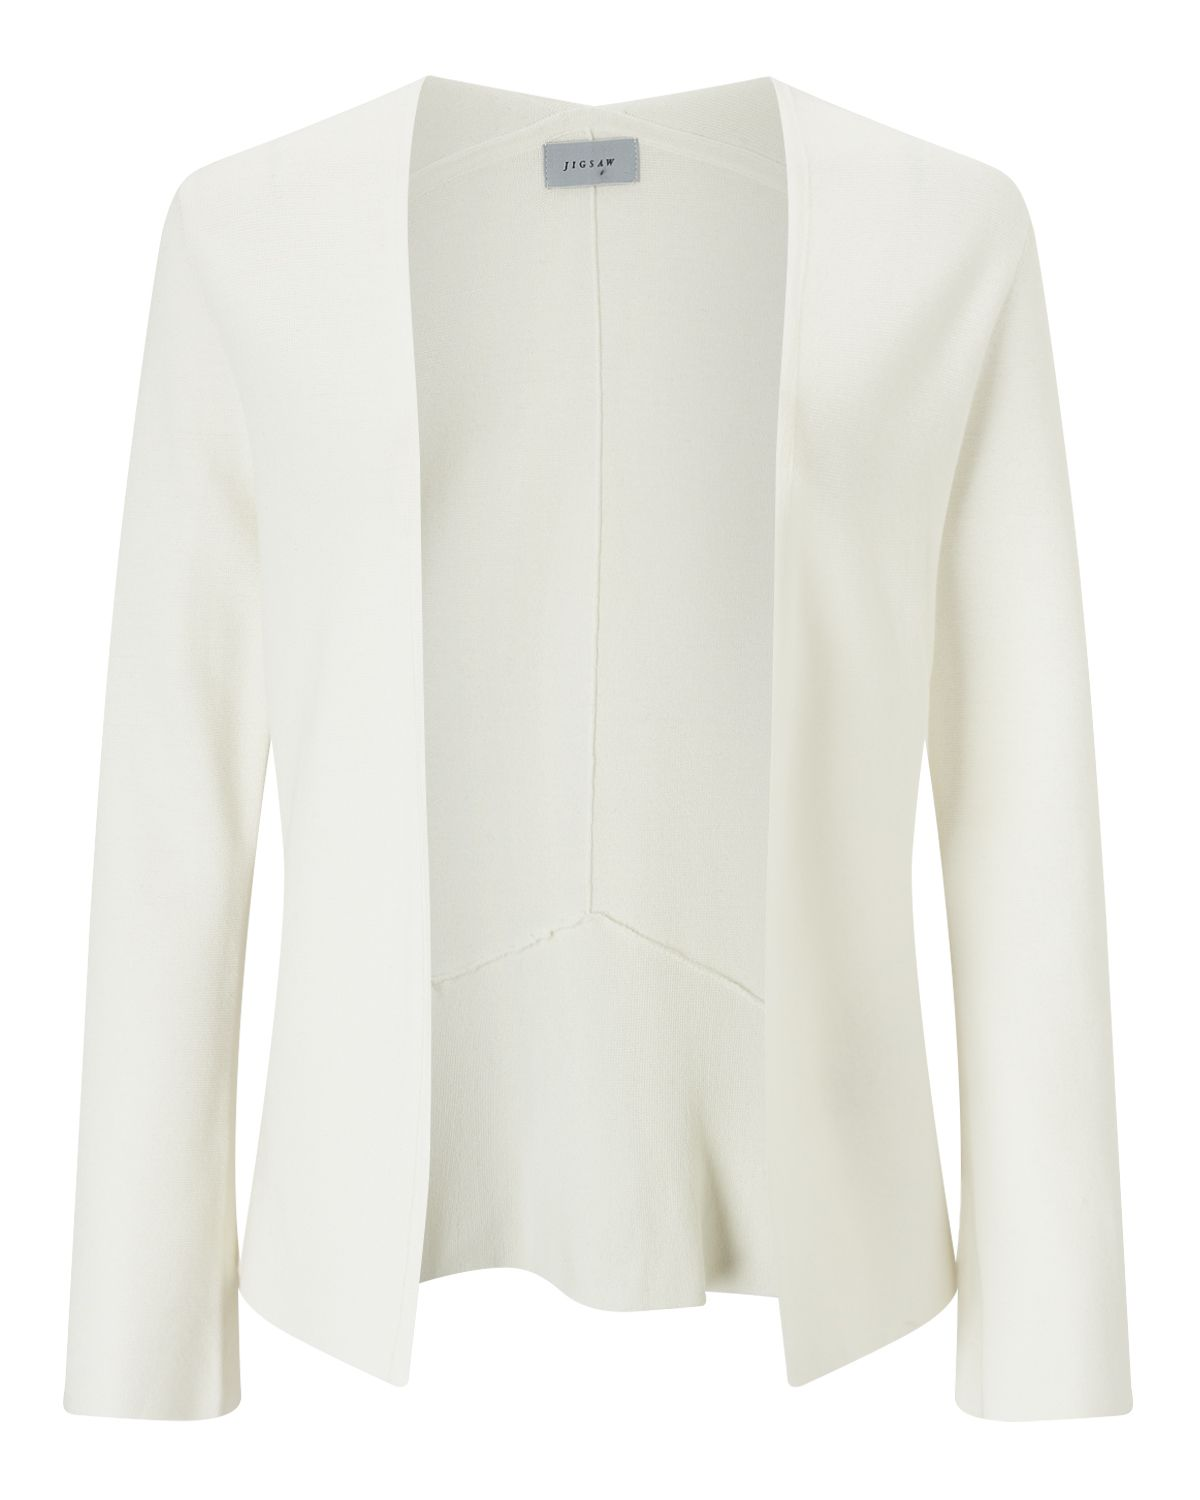 Jigsaw Flute Back Knit Jacket, White